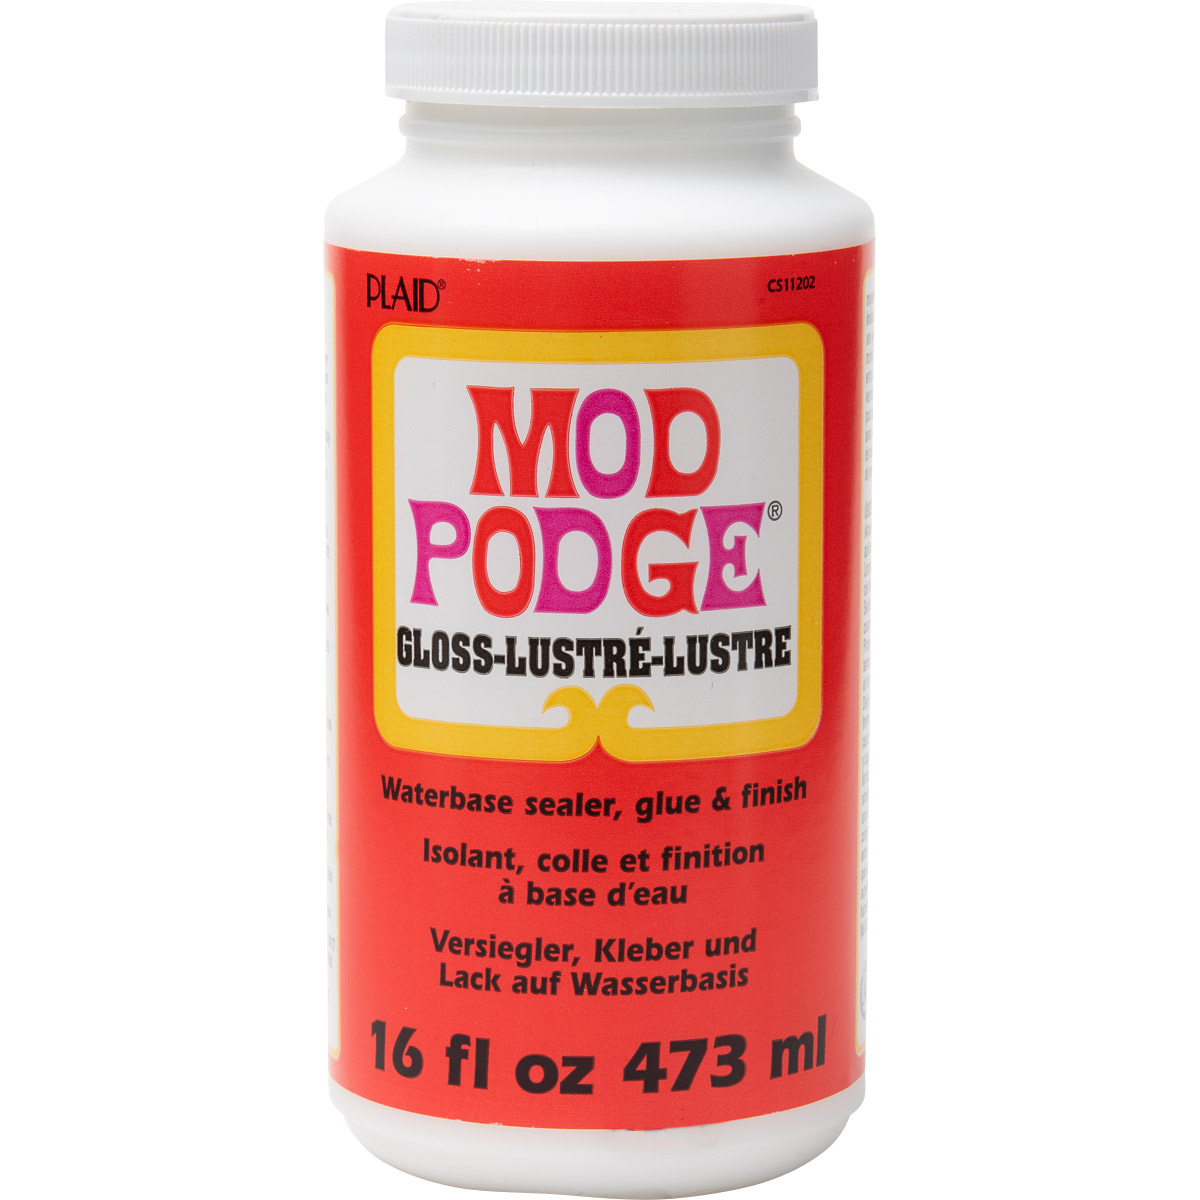 Plaid Mod Podge, Gloss, 16 oz.